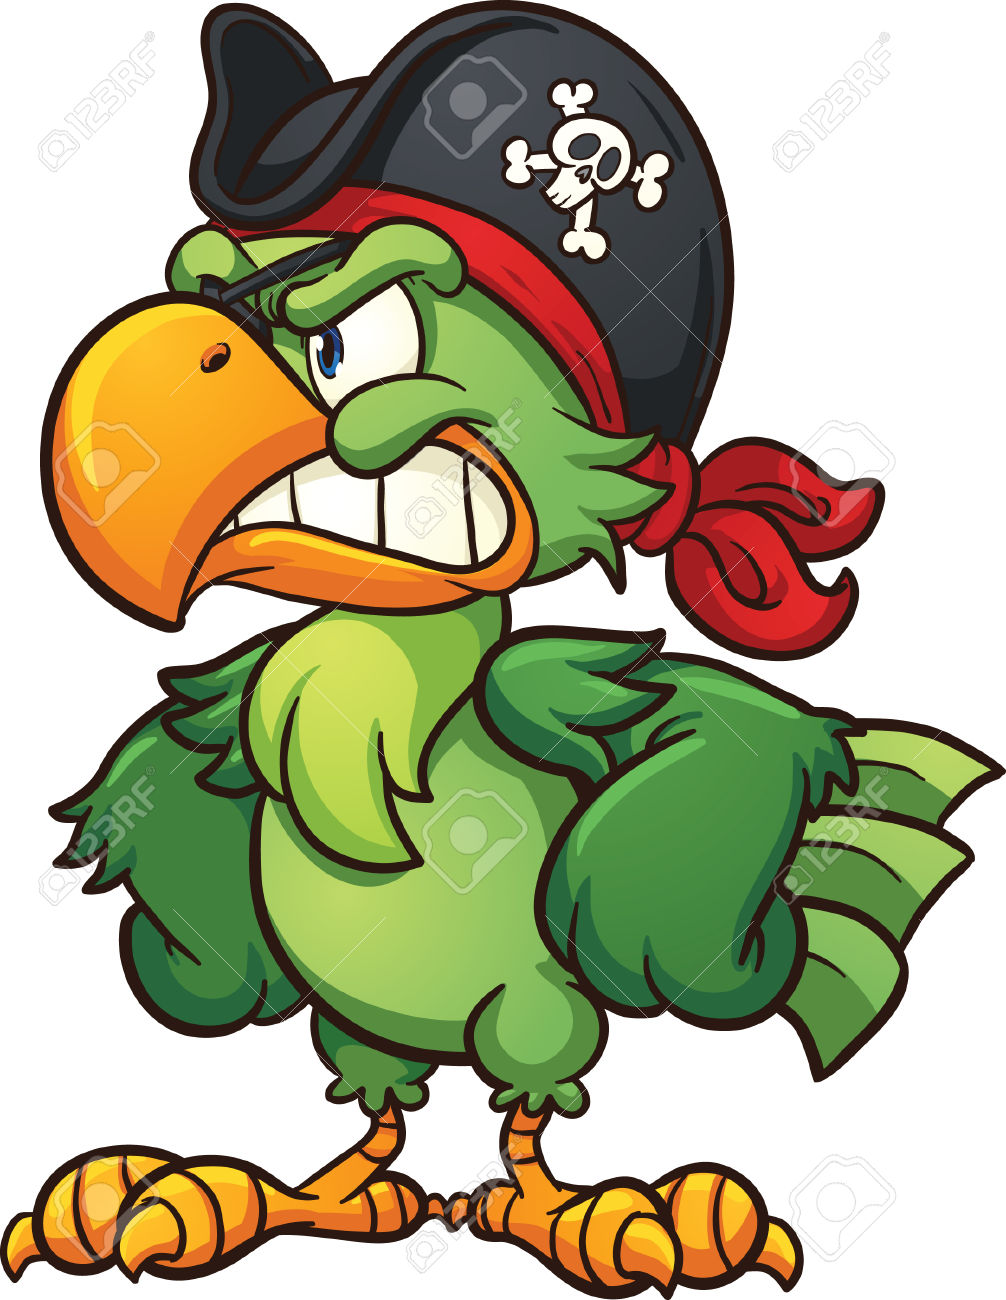 Cartoon Parrot Clipart At Getdrawings Com Free For